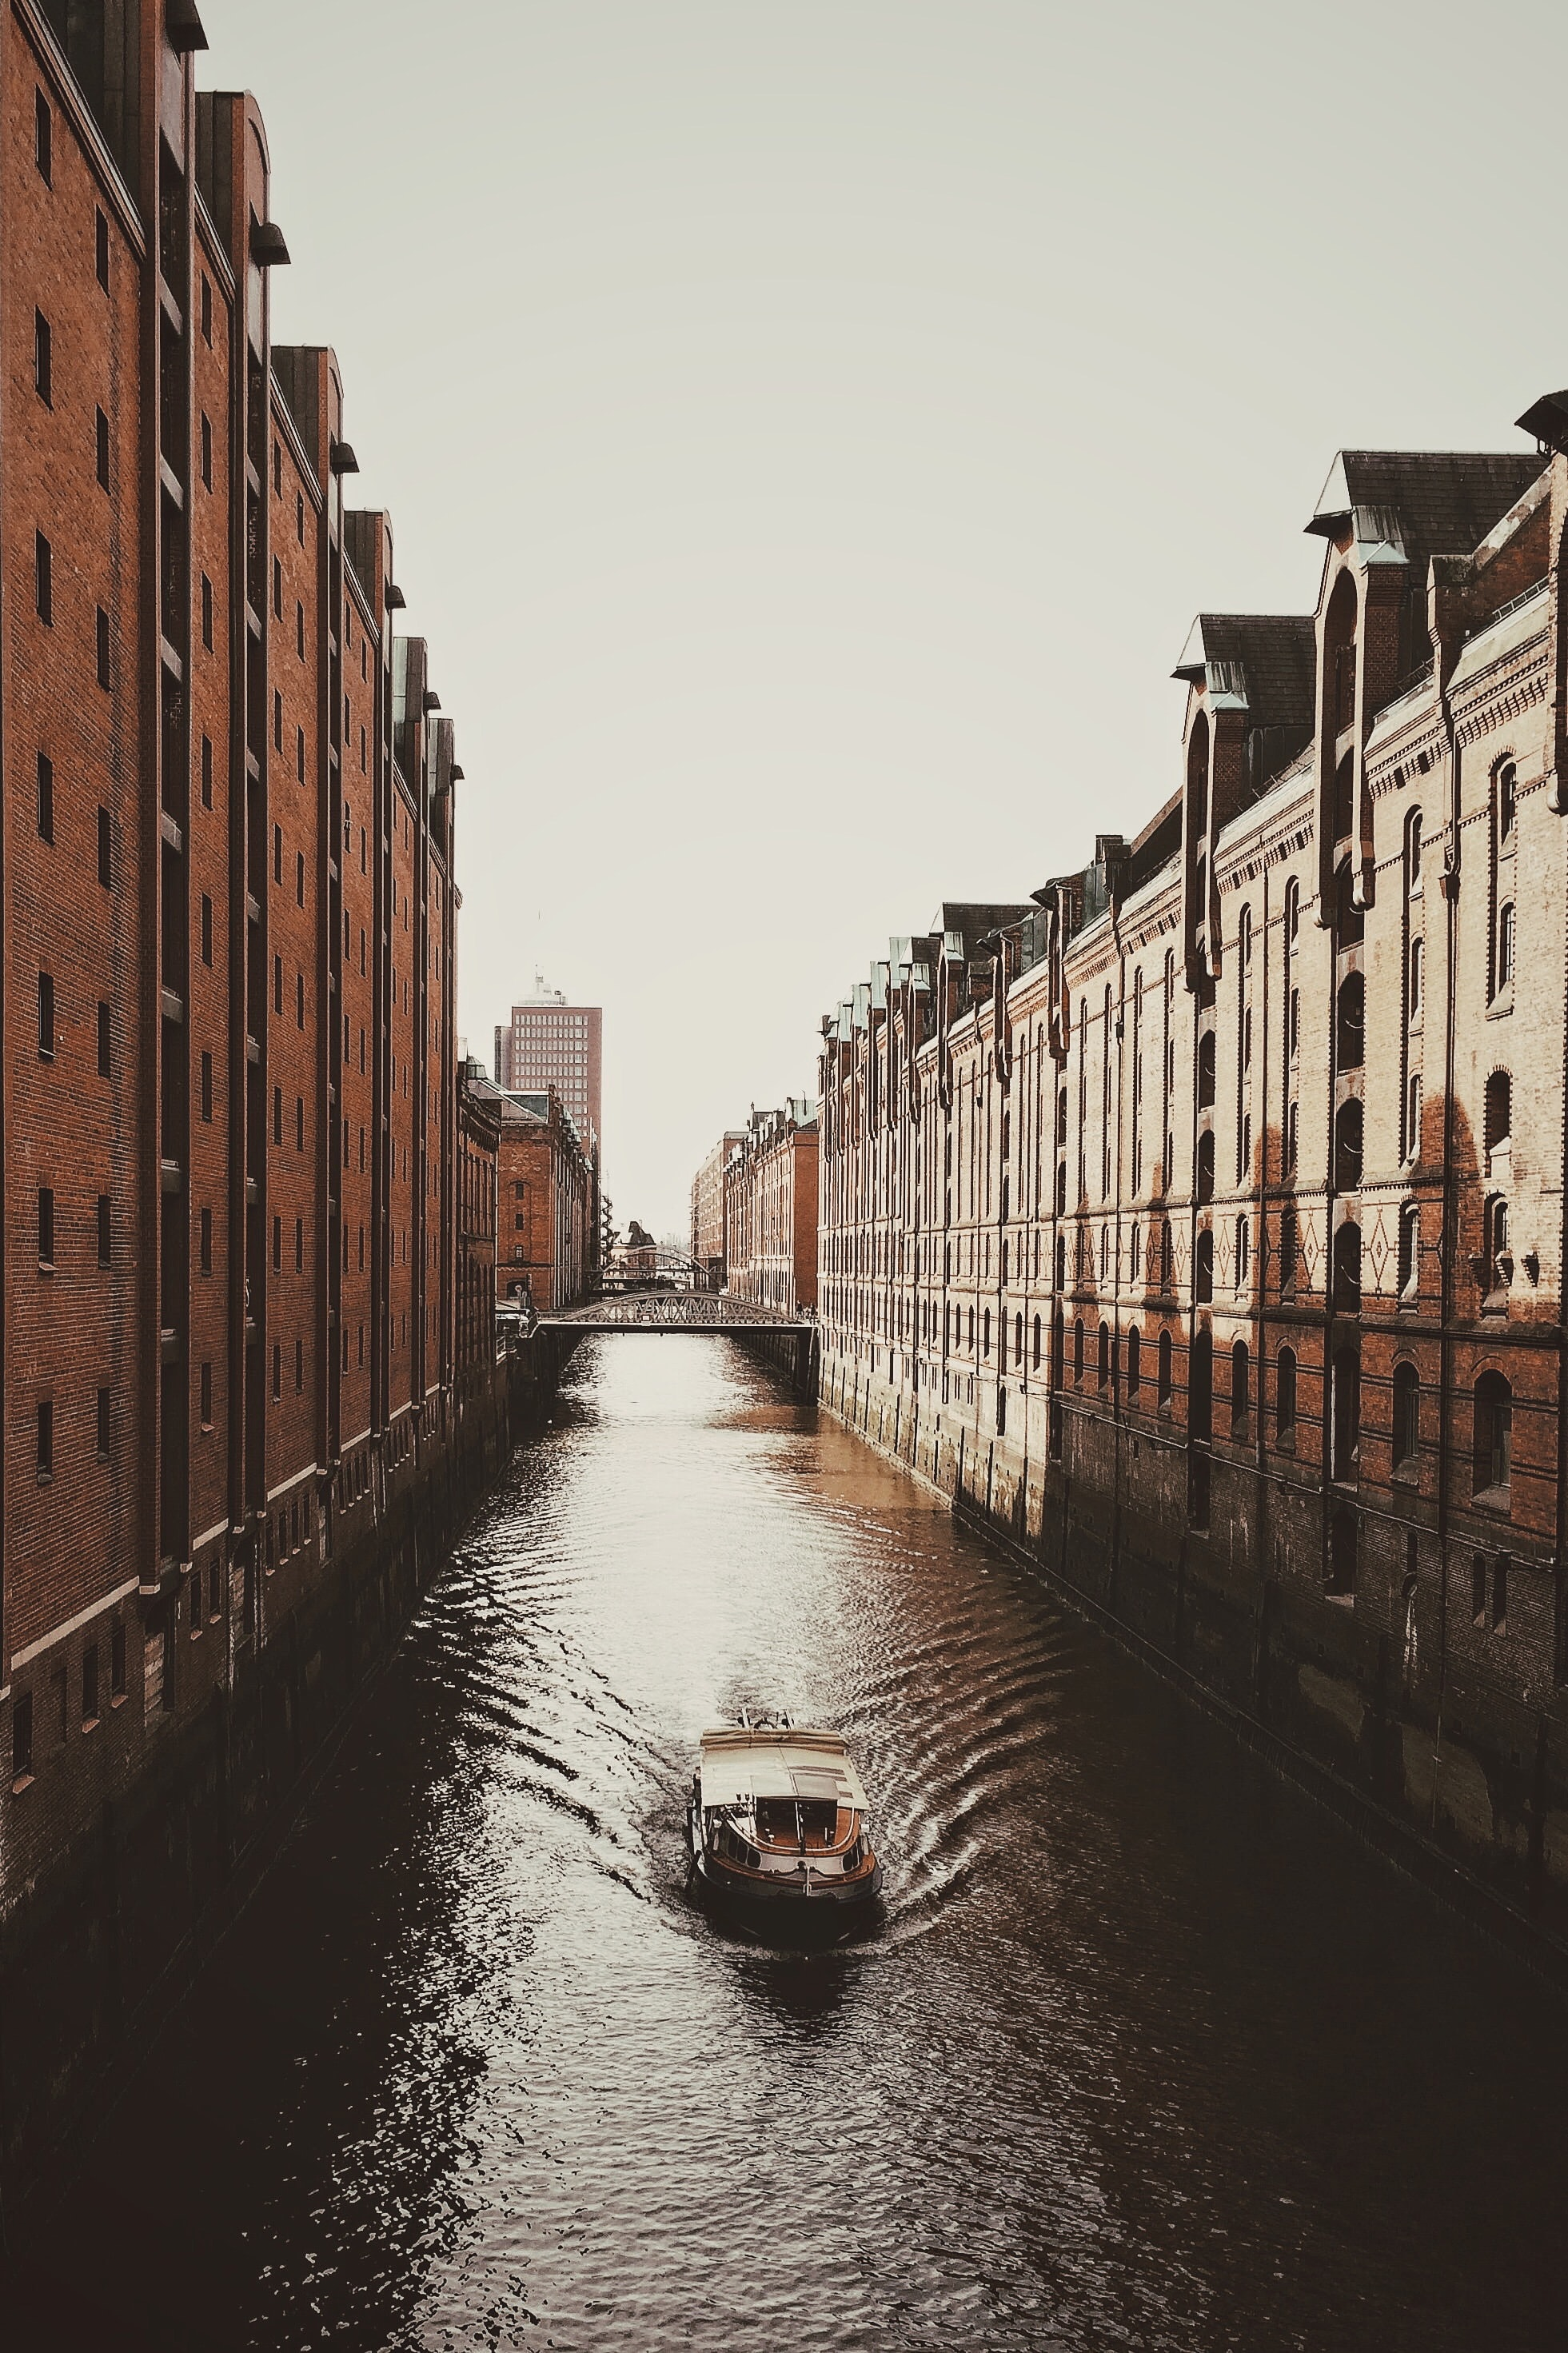 A boat on a canal in HafenCity on a cloudy day